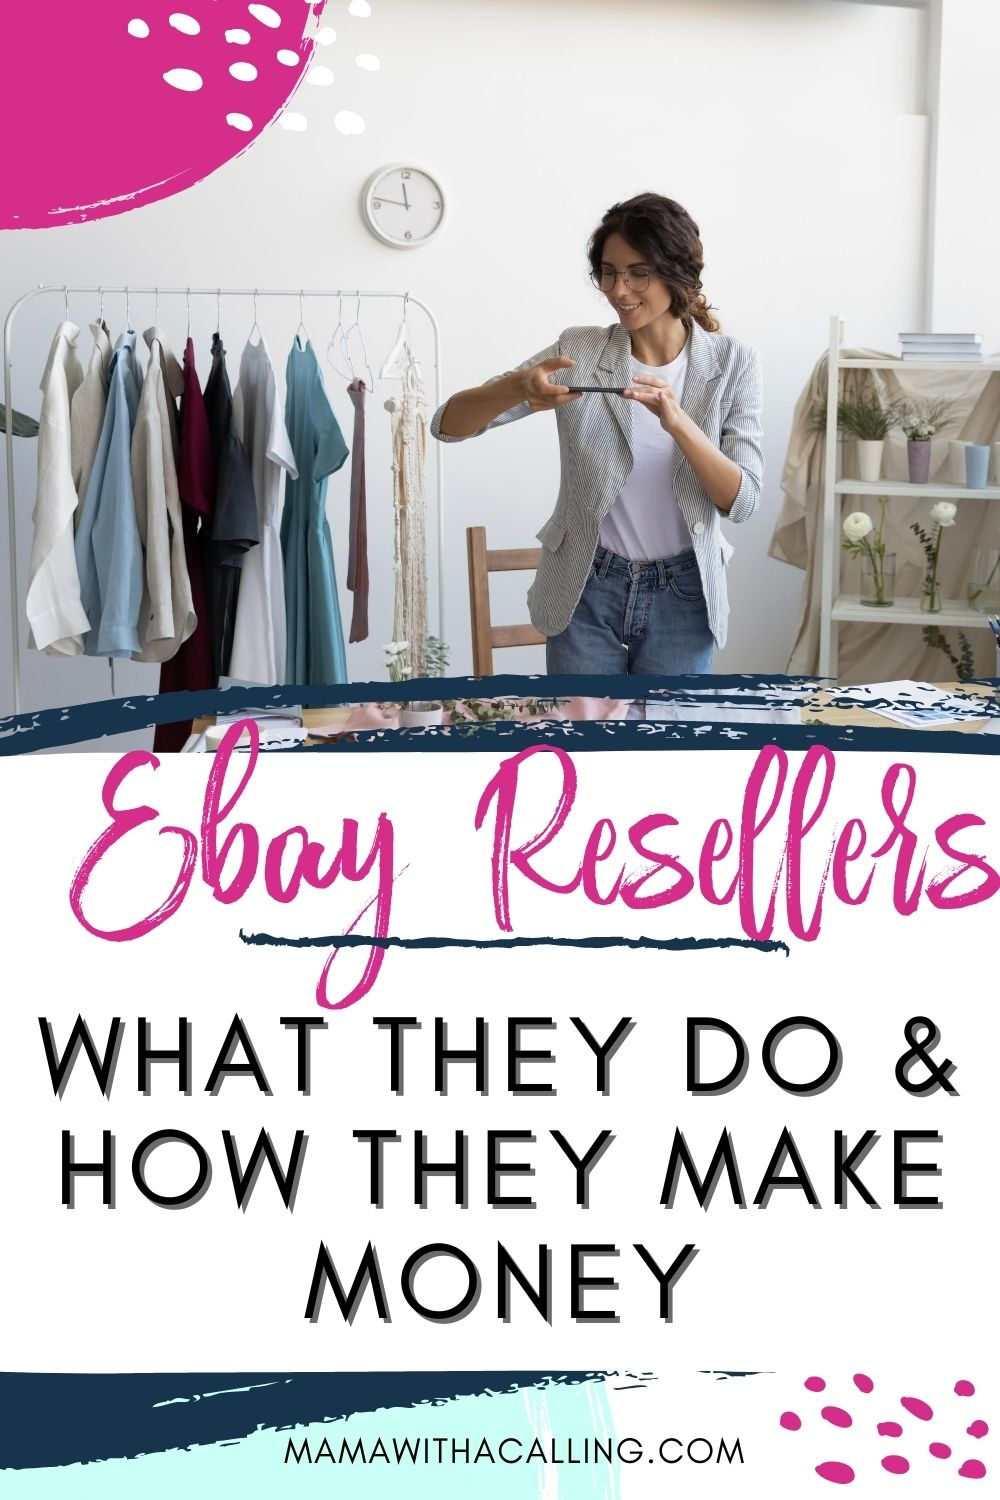 What It Means To Be An Ebay Reseller And Have A Reselling Business